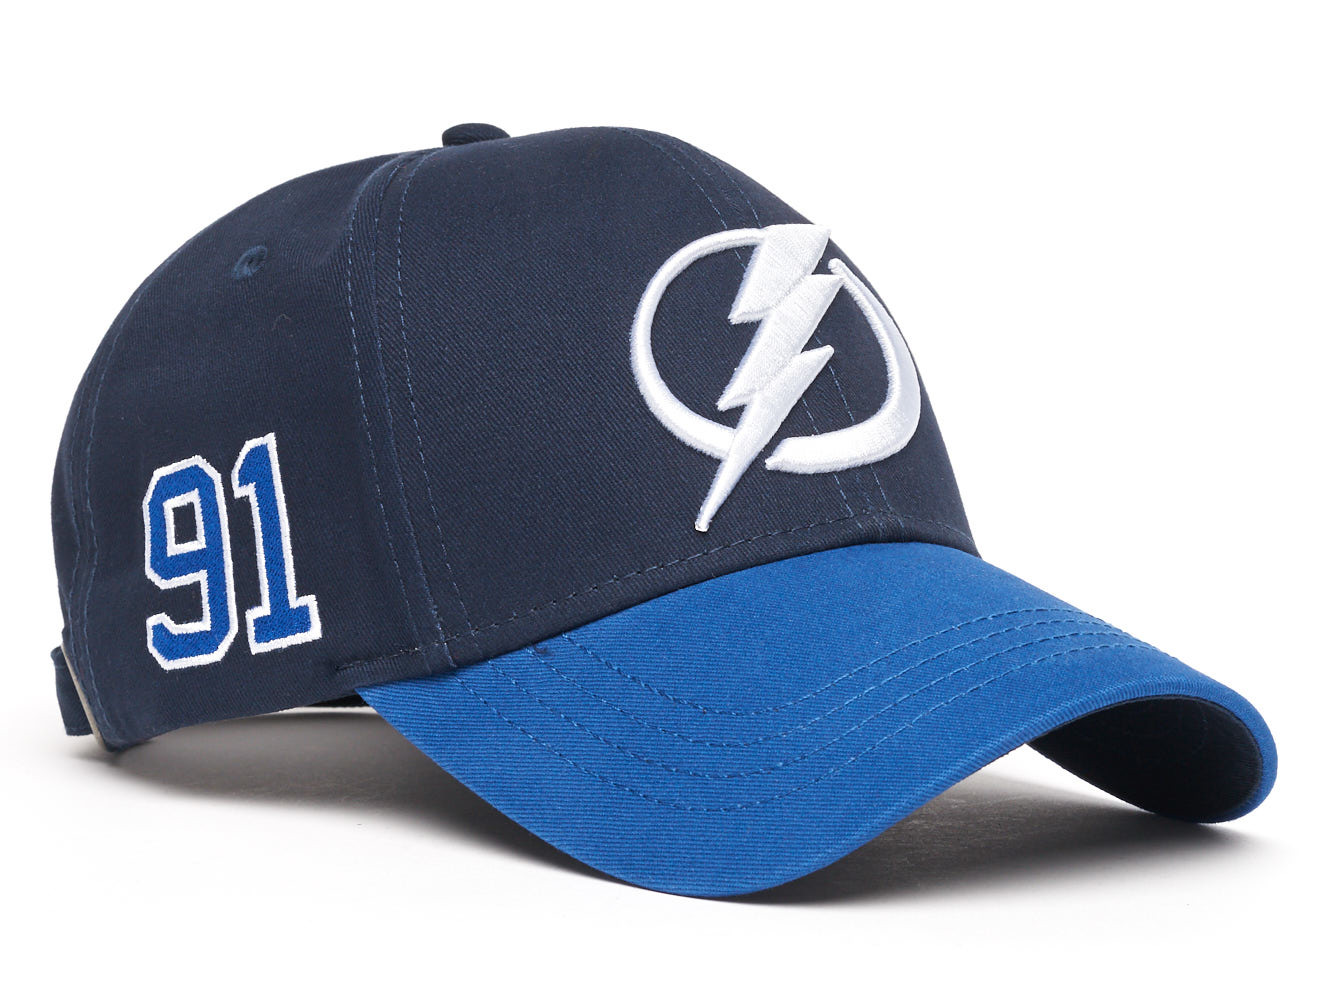 Бейсболка NHL Tampa Bay Lightning № 91